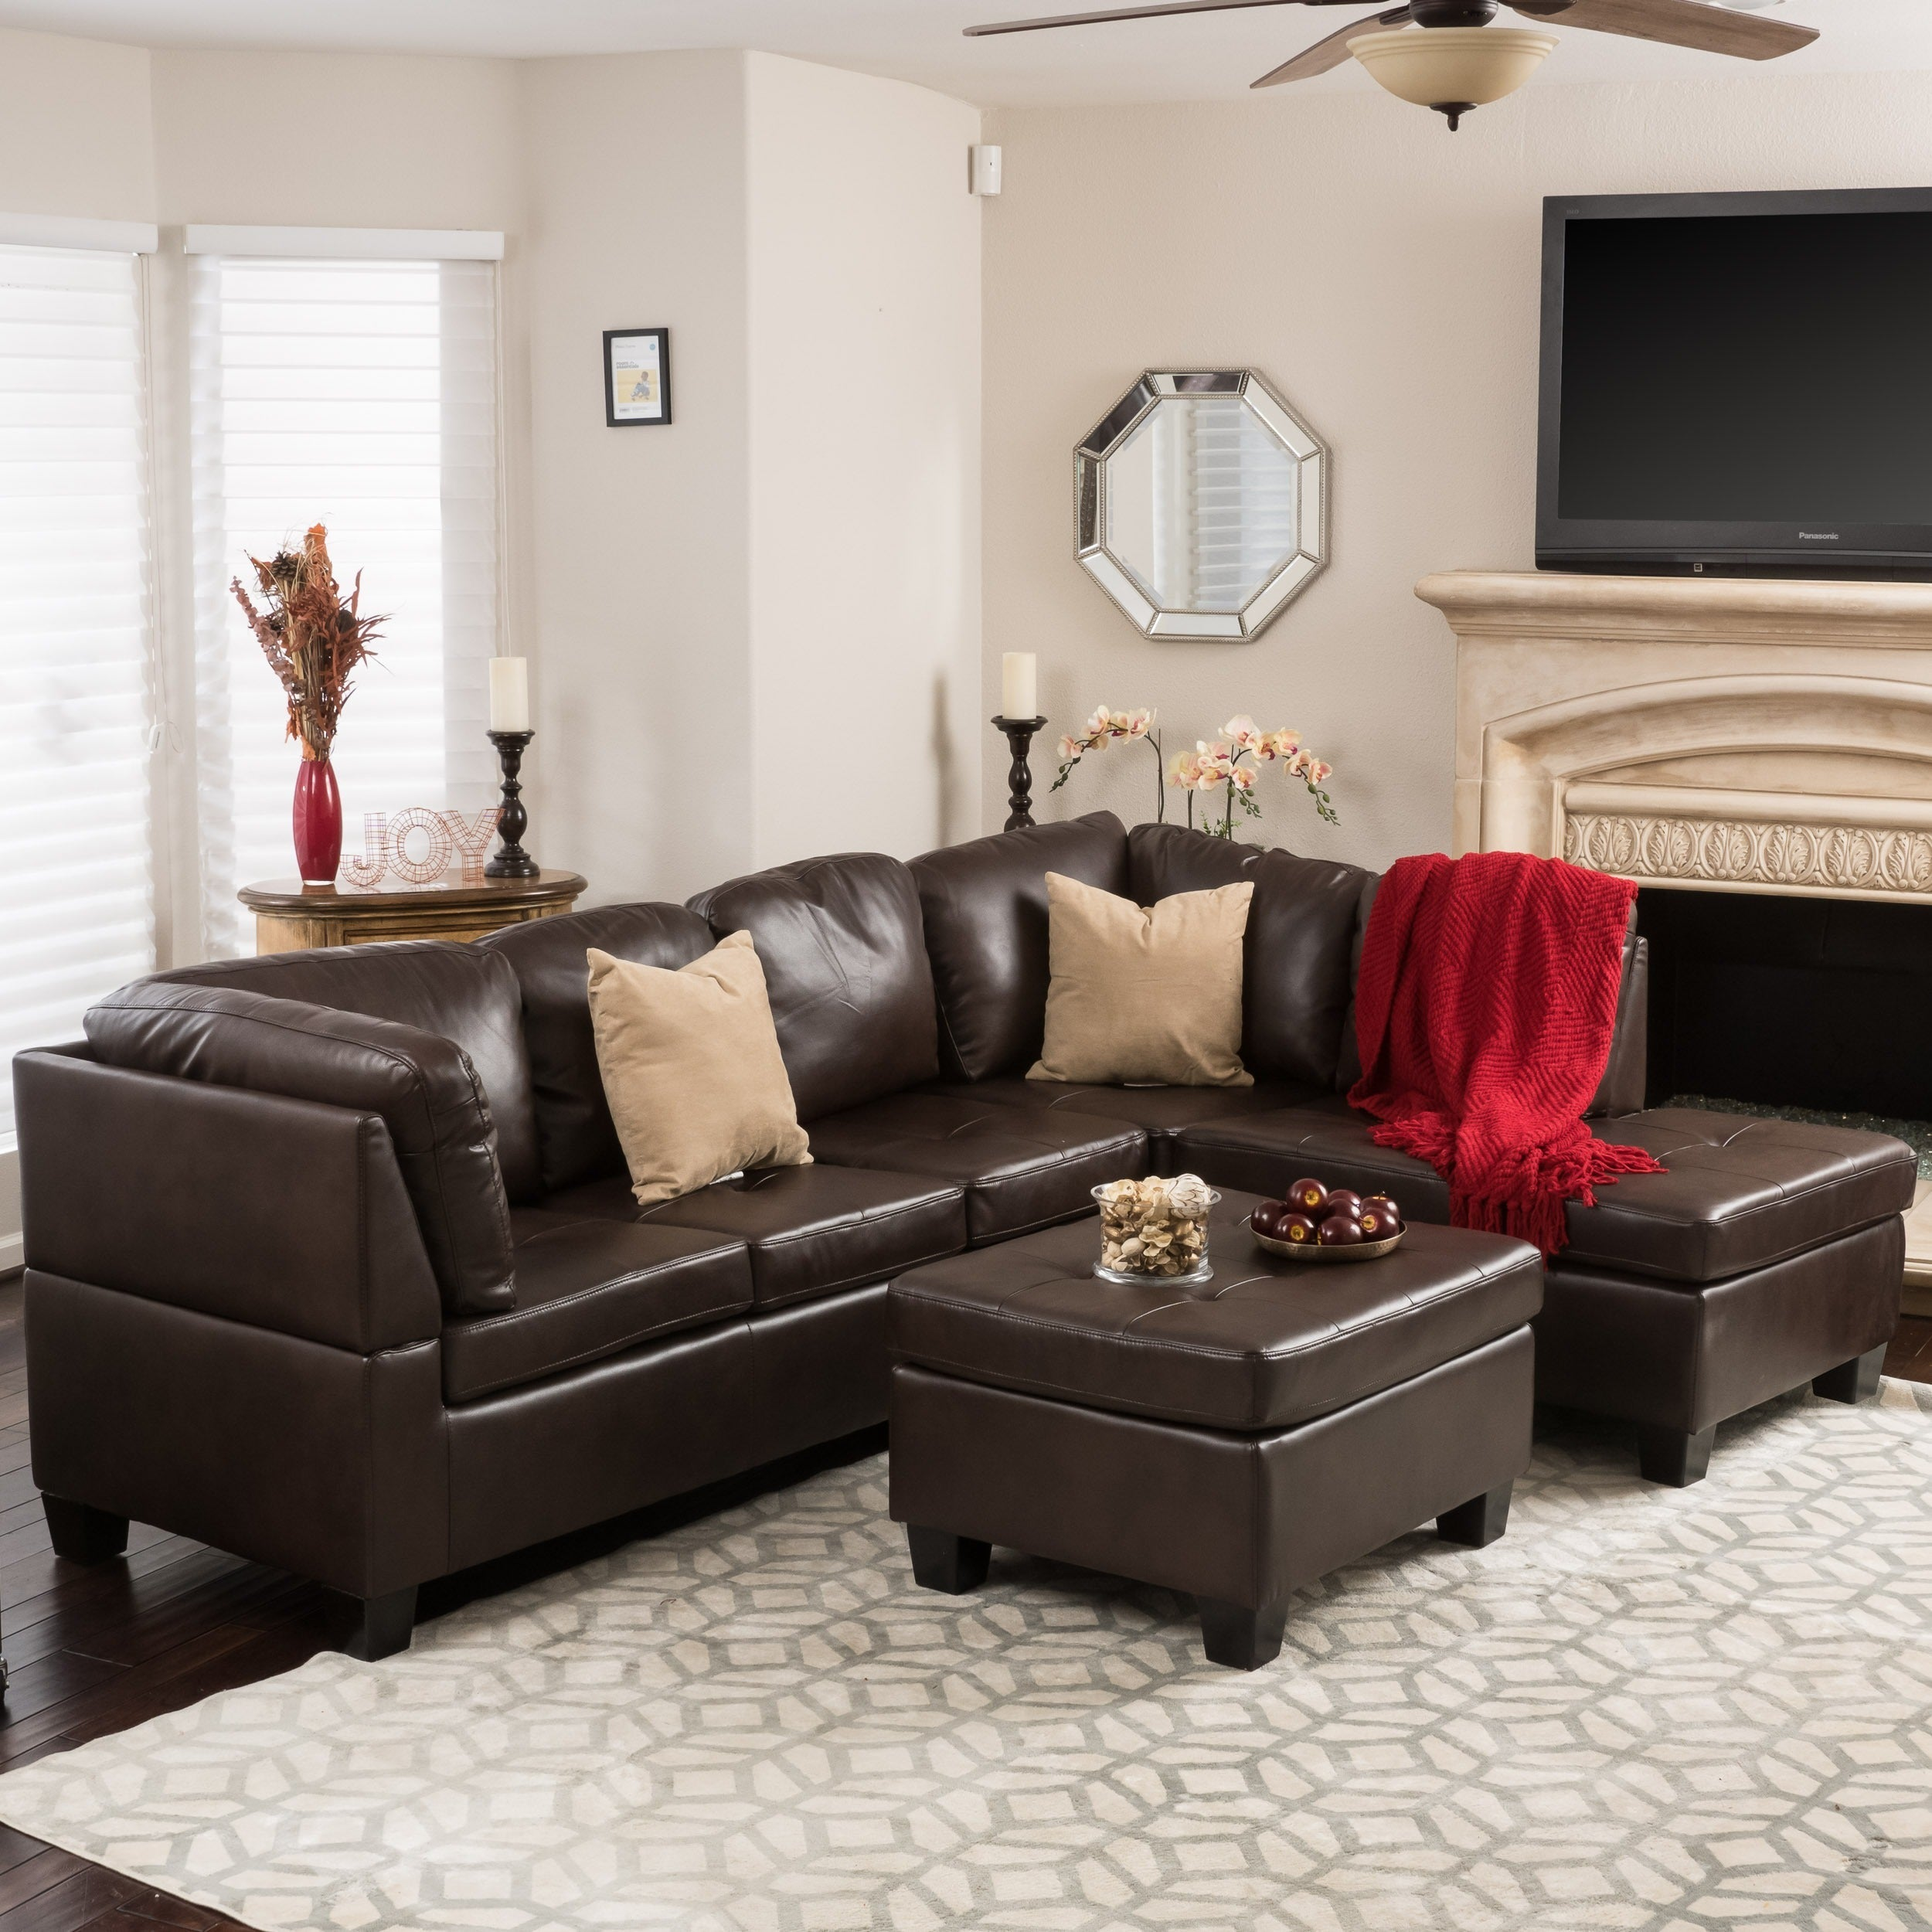 Canterbury 3-piece PU Leather Sectional Sofa Set by Chris...